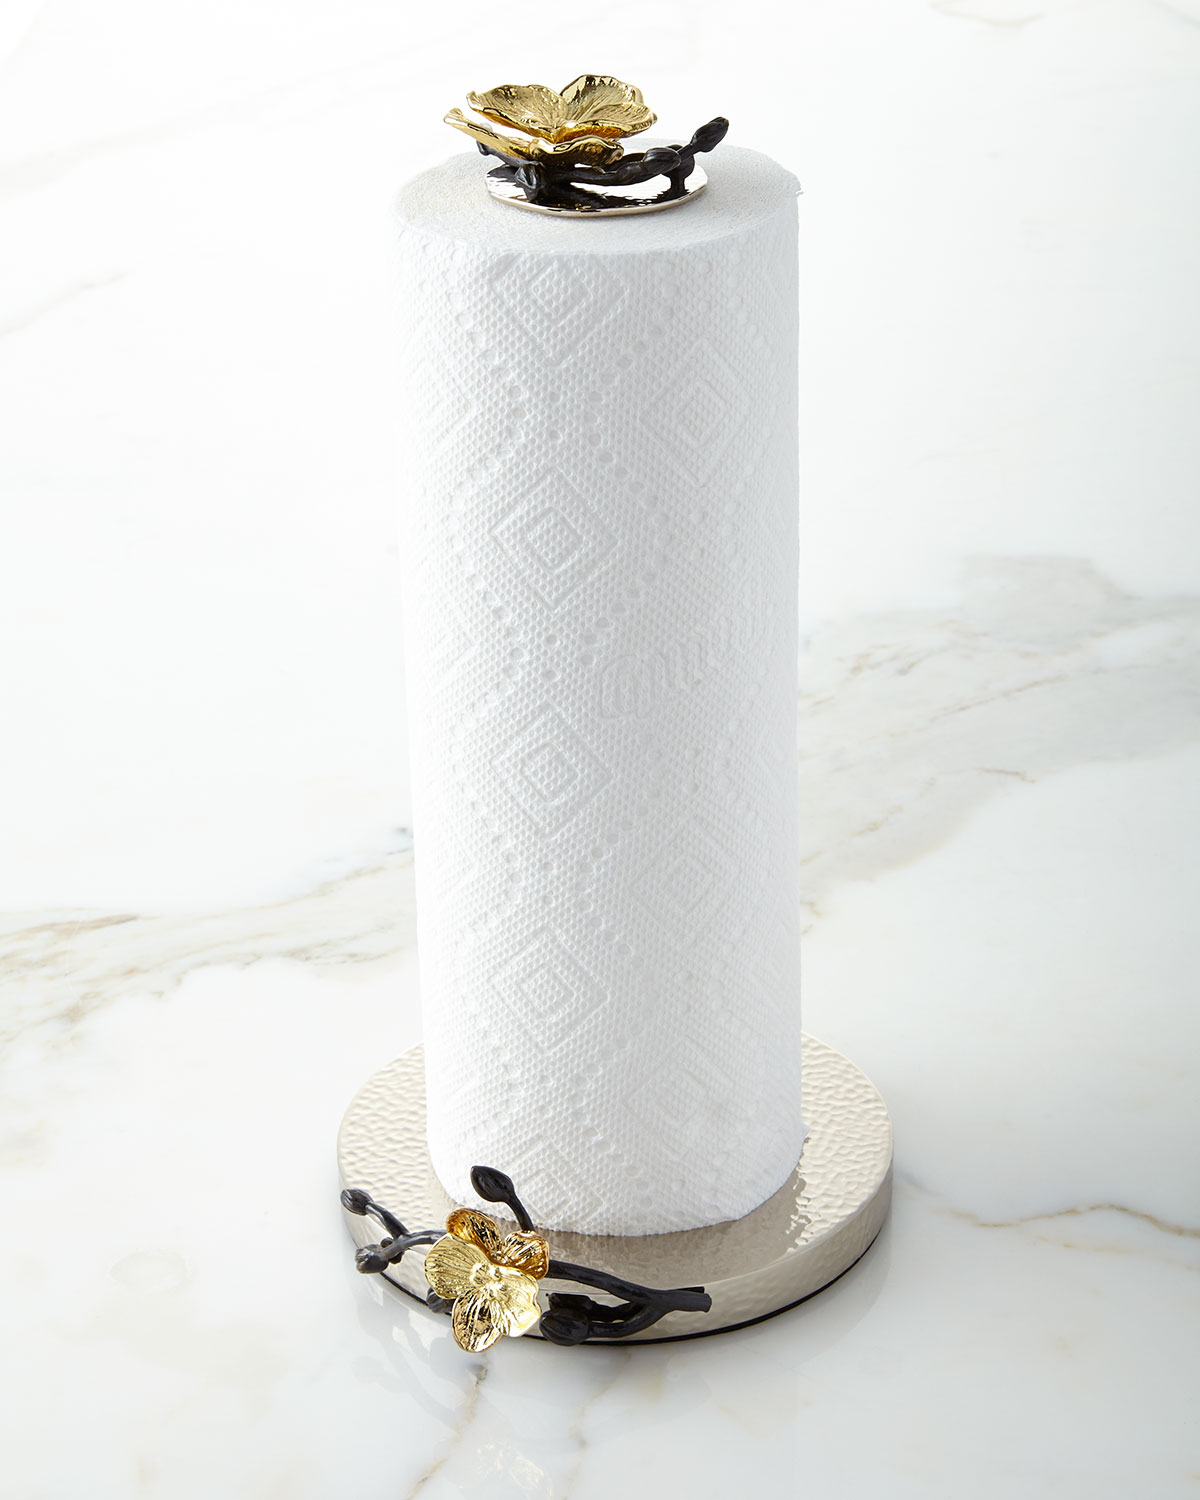 Michael Aram Gold Orchid Paper Towel Holder Neiman Marcus